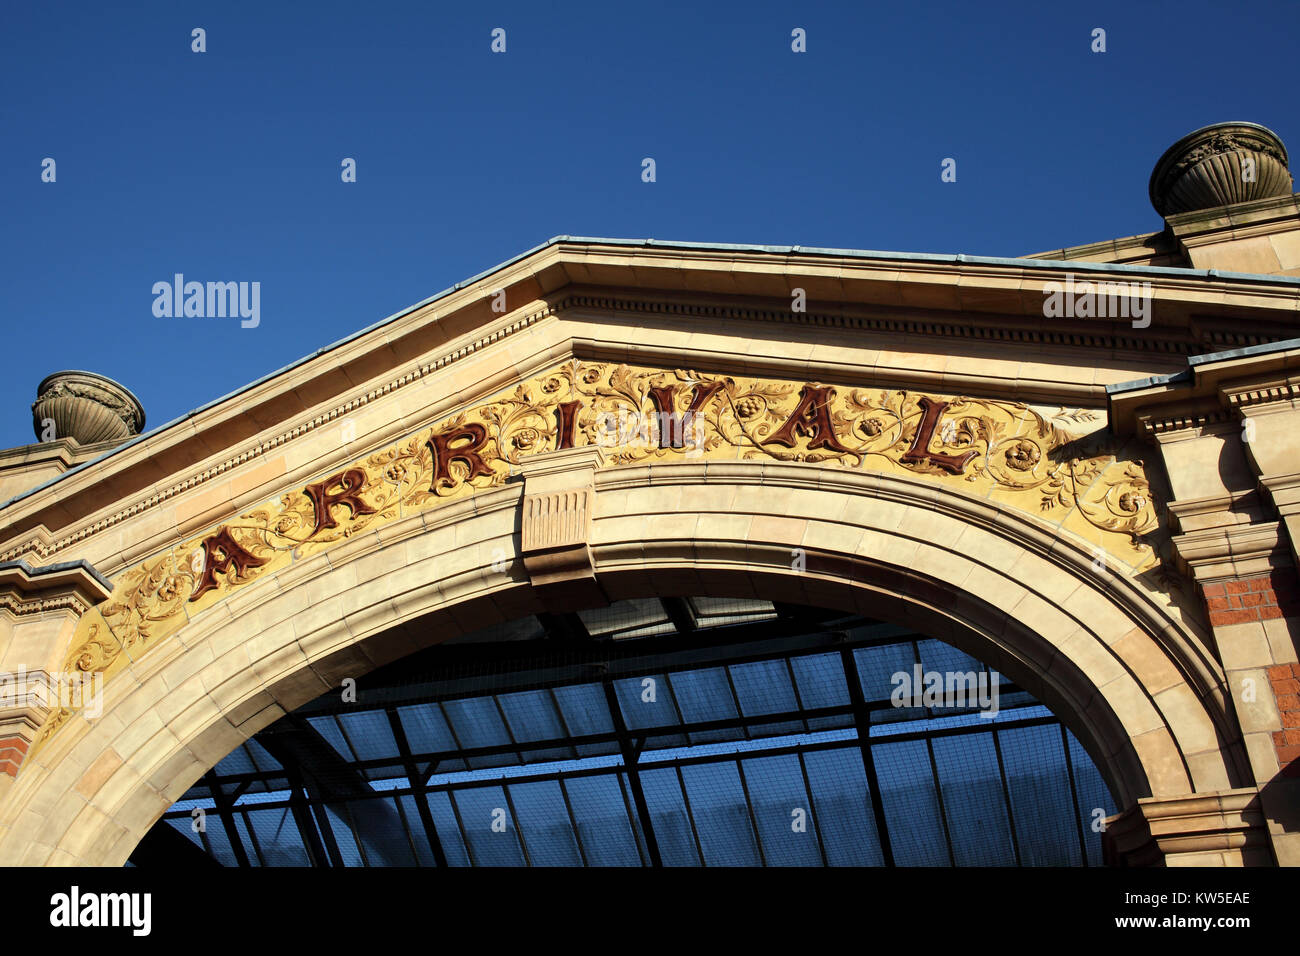 An elaborate archway at the entrance to the late-Victorian London Road railway station, Leicester. Stock Photo